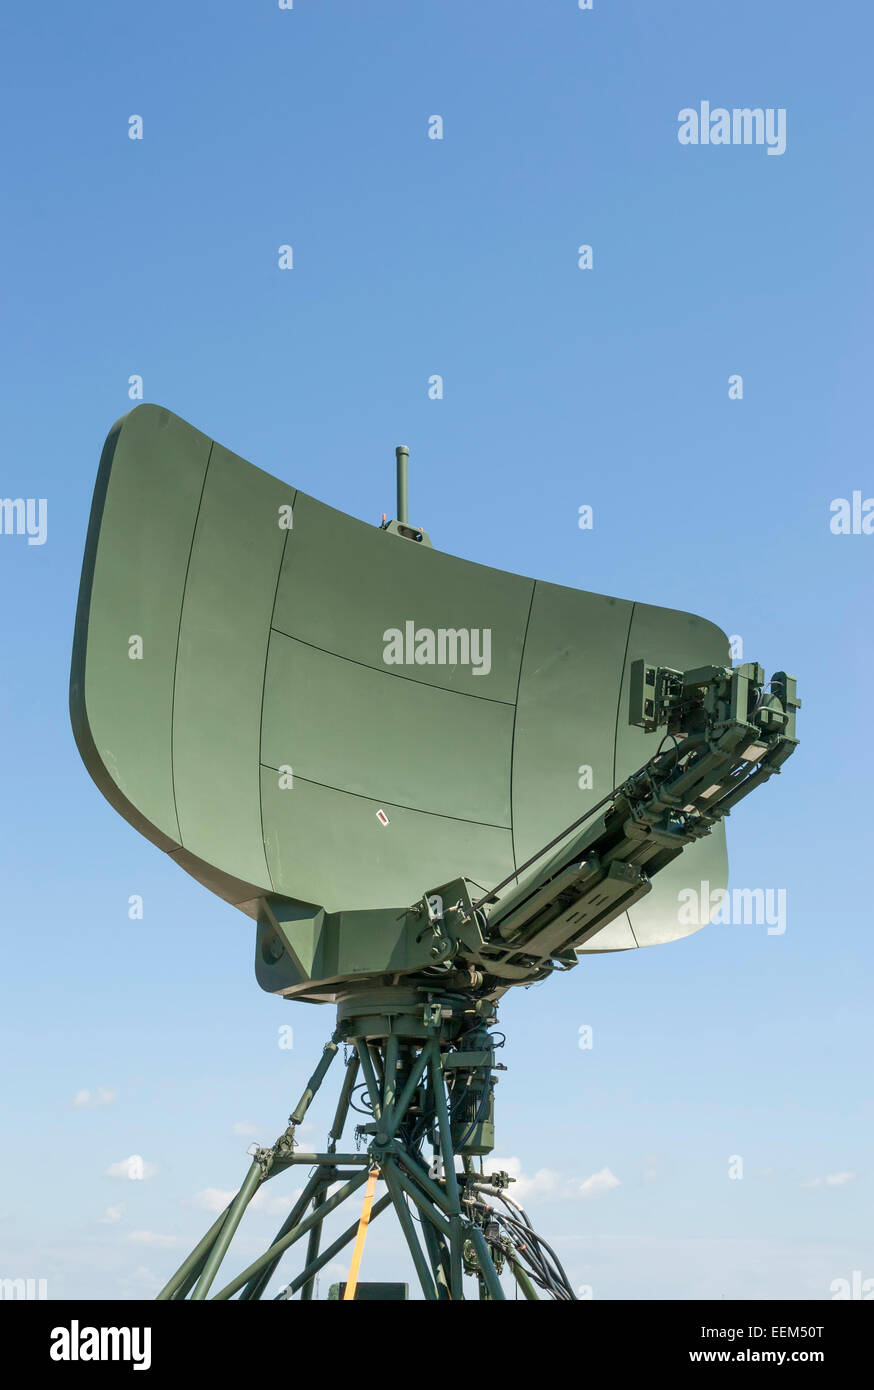 Modern military radar with long range target localization capabilities,front view - Stock Image